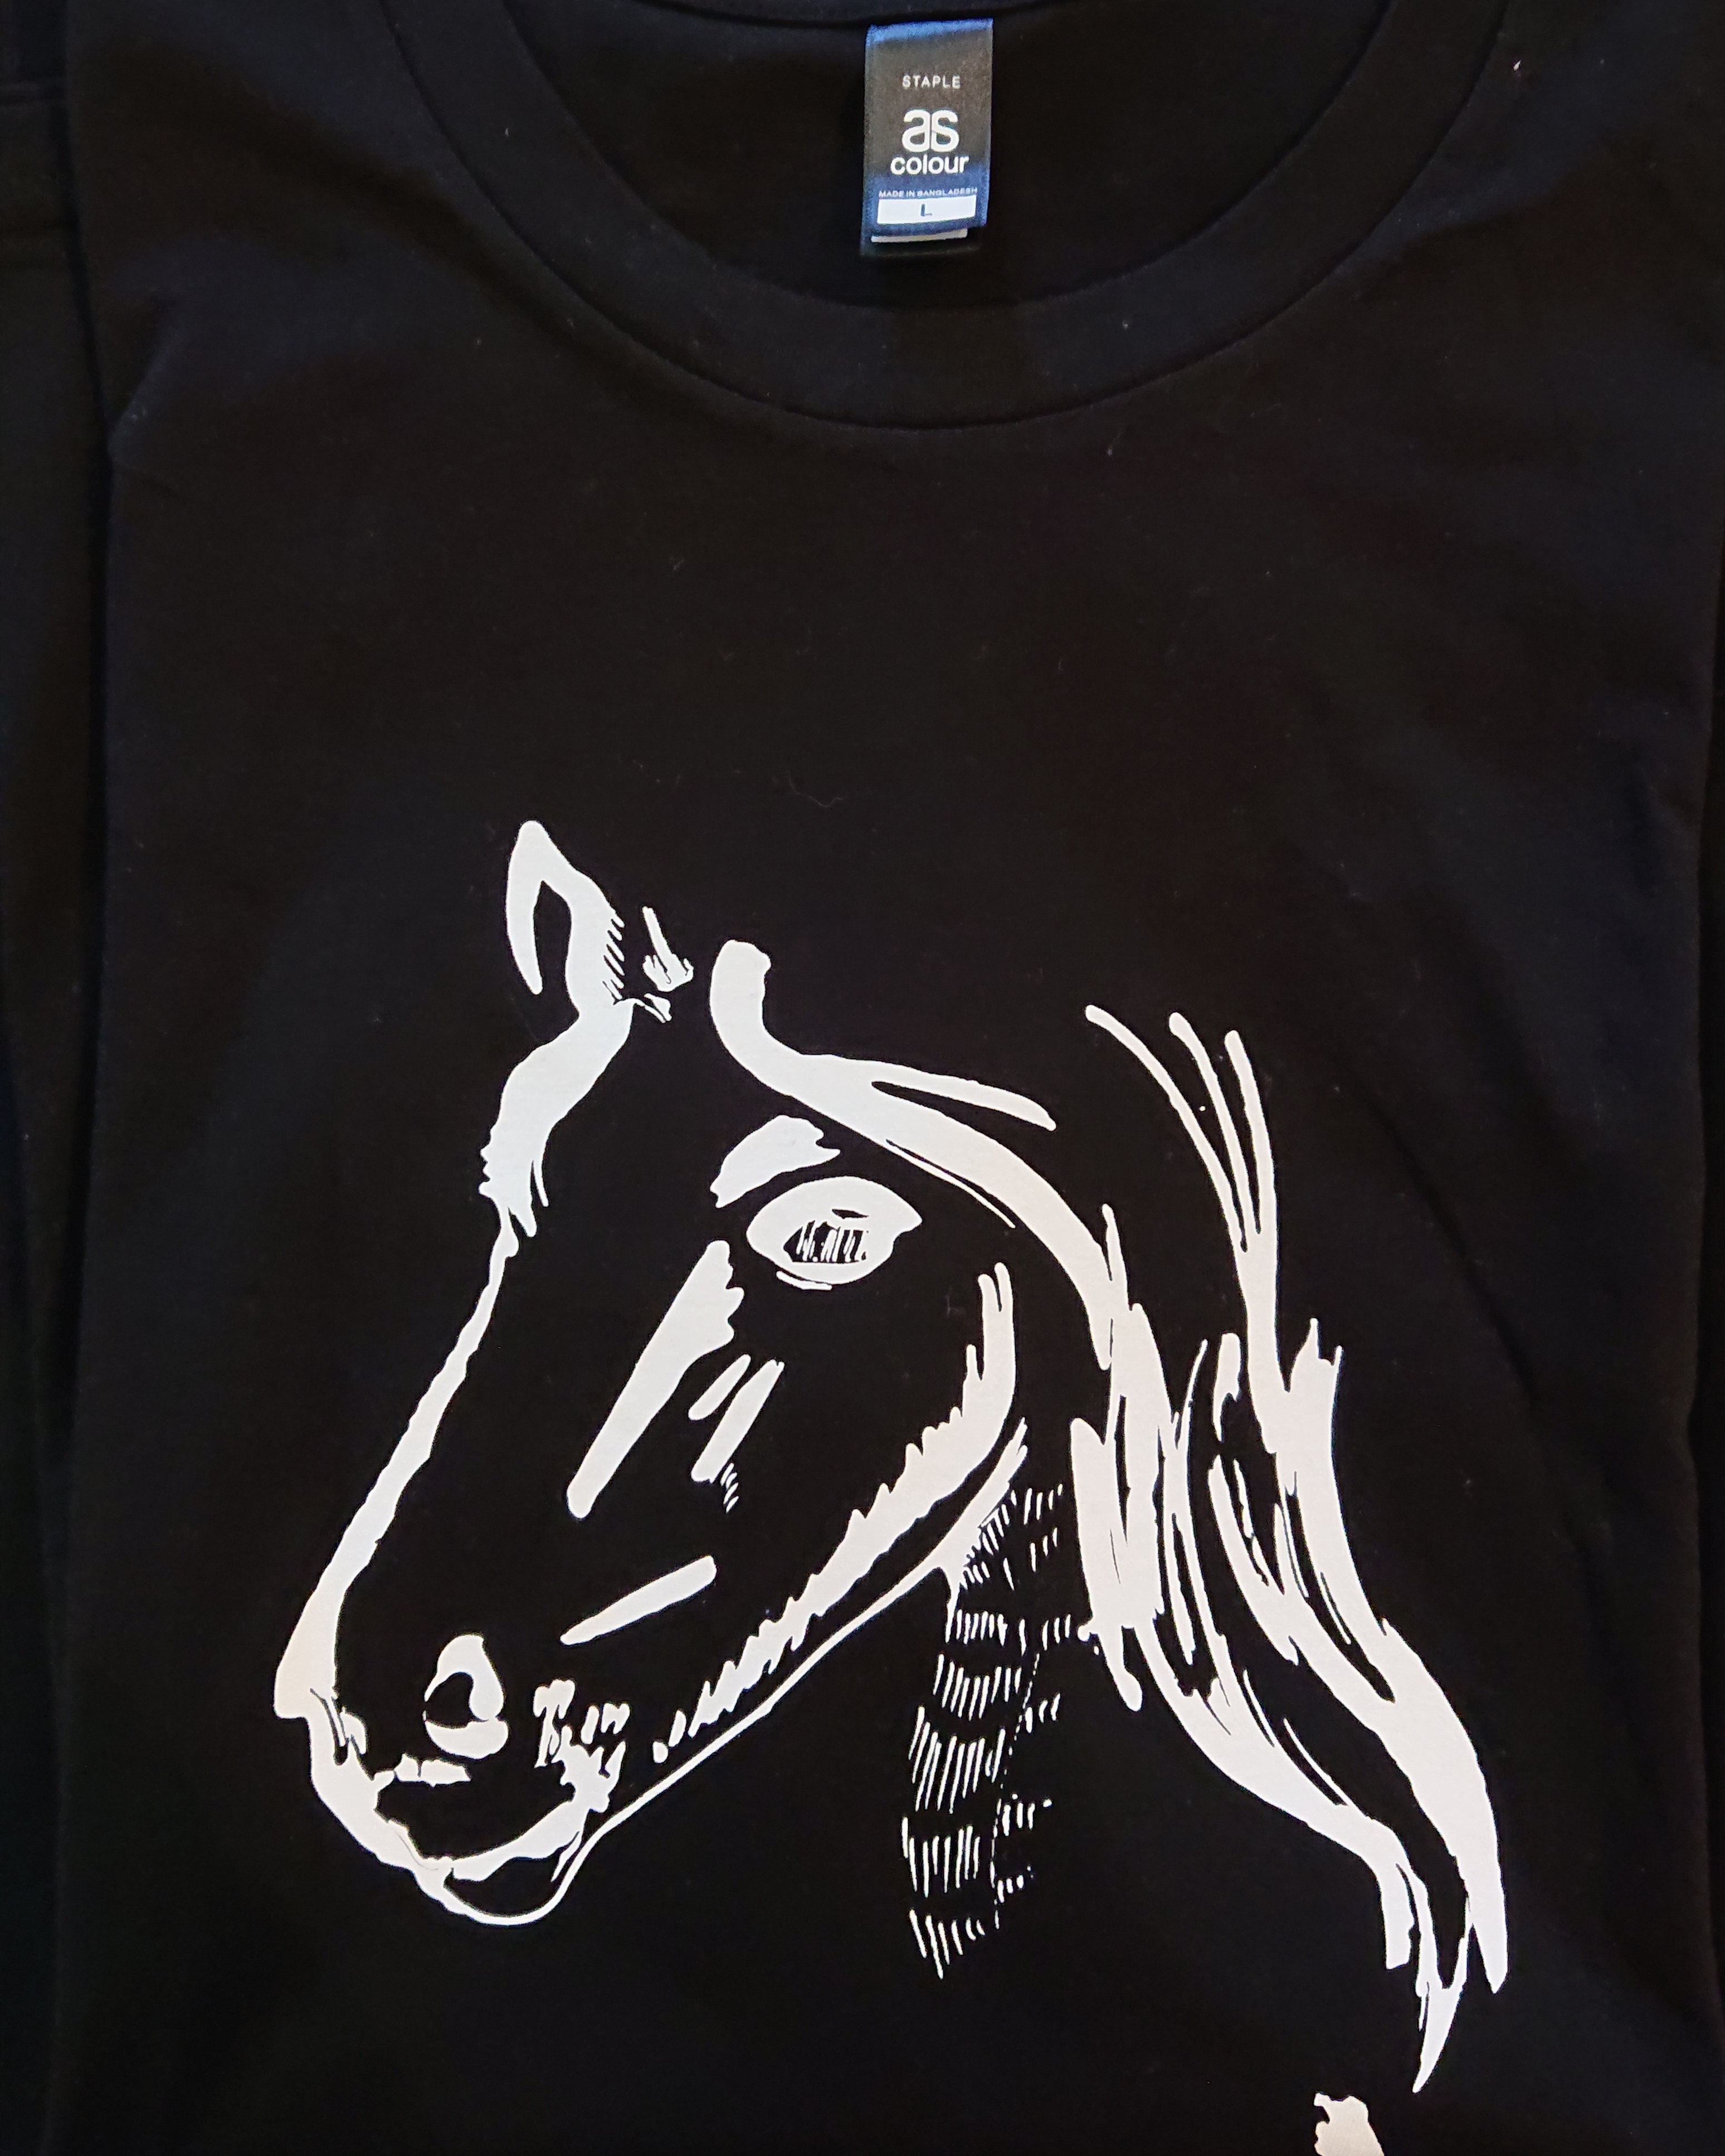 Show Ponies T-shirt - Black and White - 2XL 00010